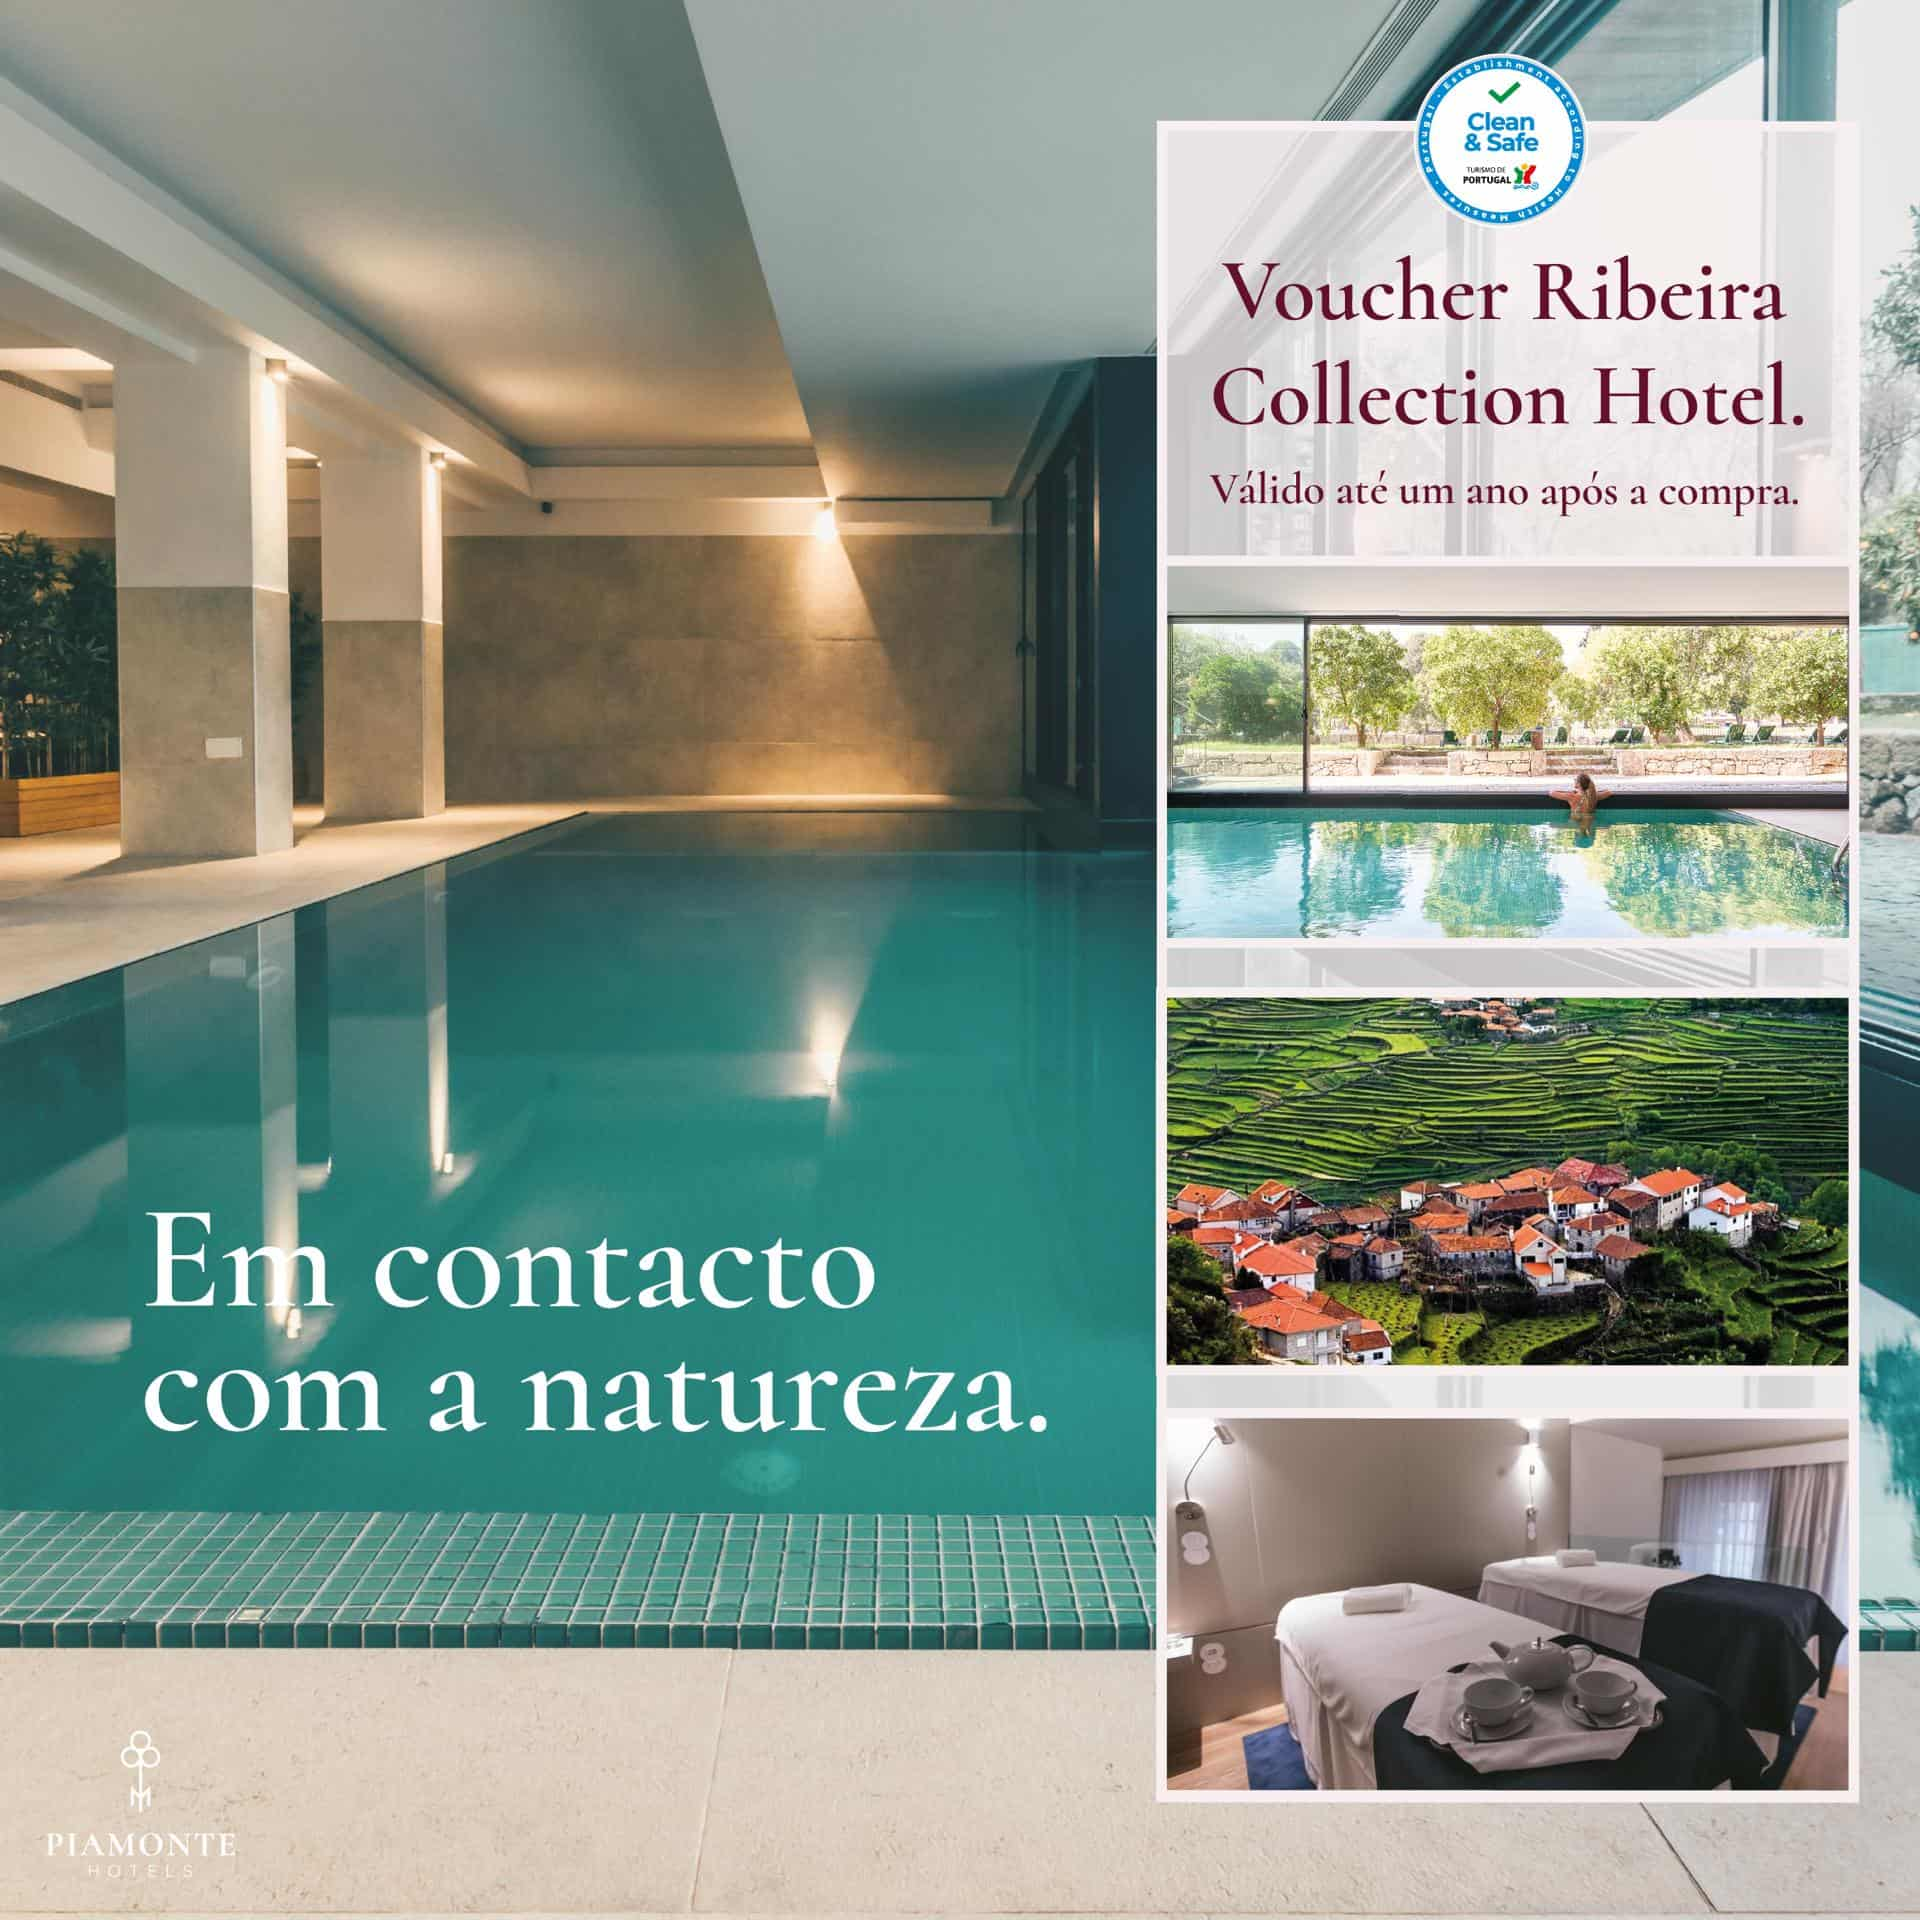 Voucher Ribeira Collection Hotel 2020-2021 - Ribeira Collection Hotel - Arcos de Valdevez